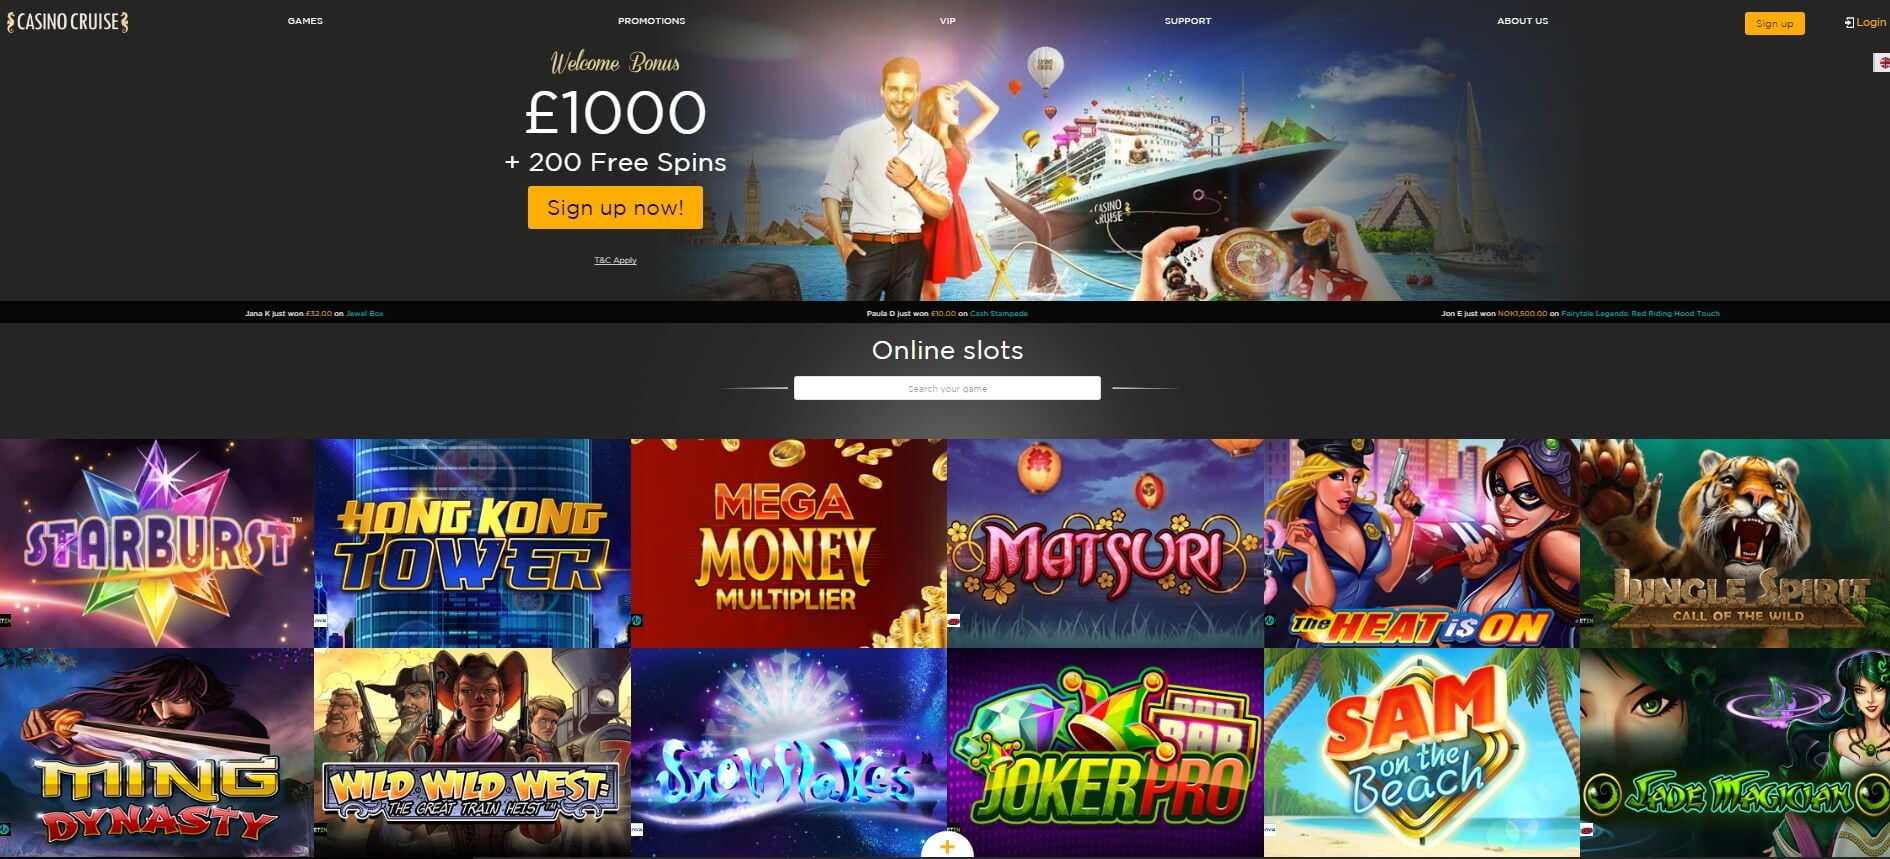 casino cruise online casino games and slots